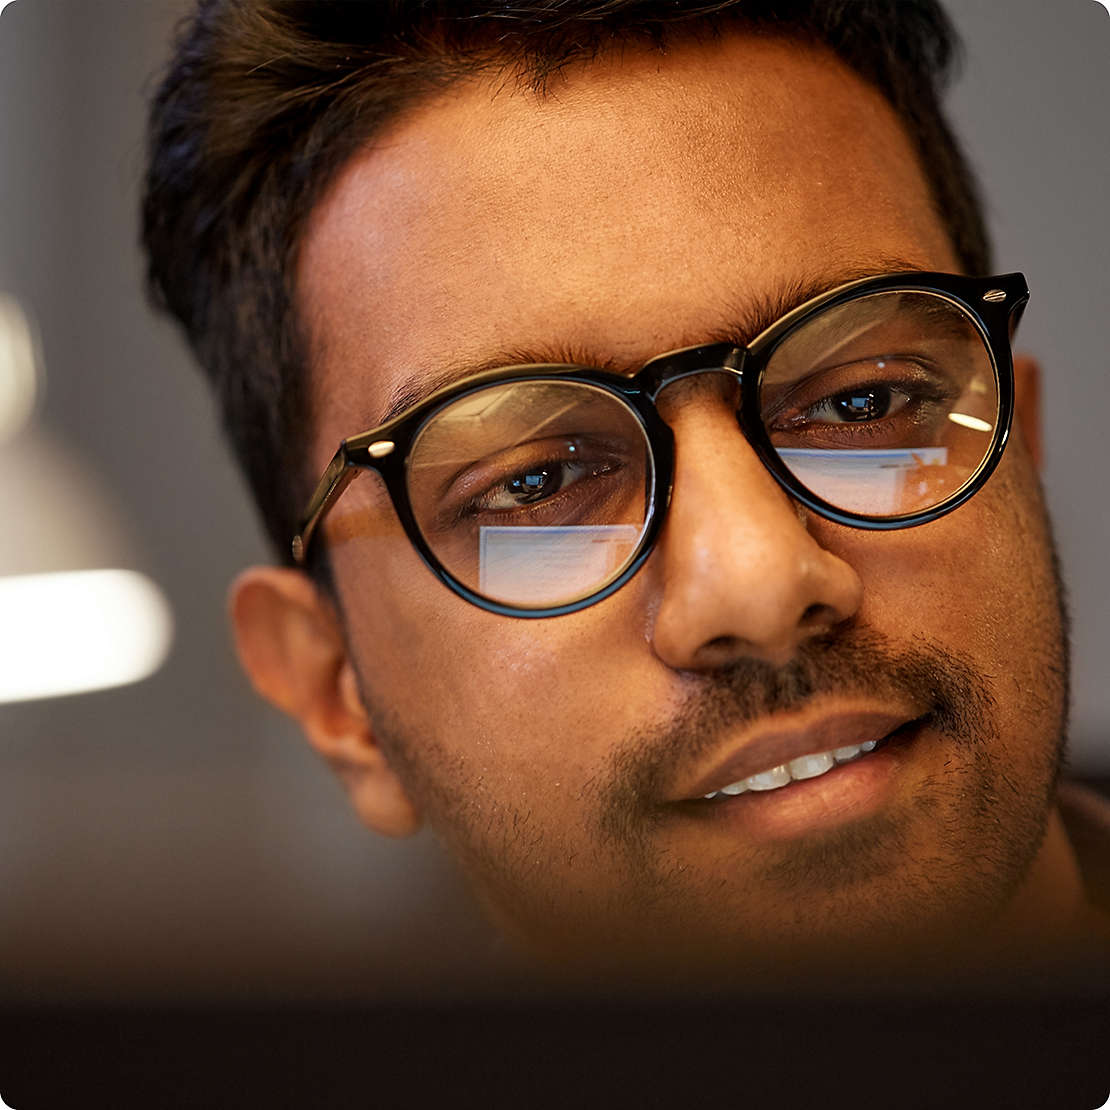 Man staring at computer screen with glasses on